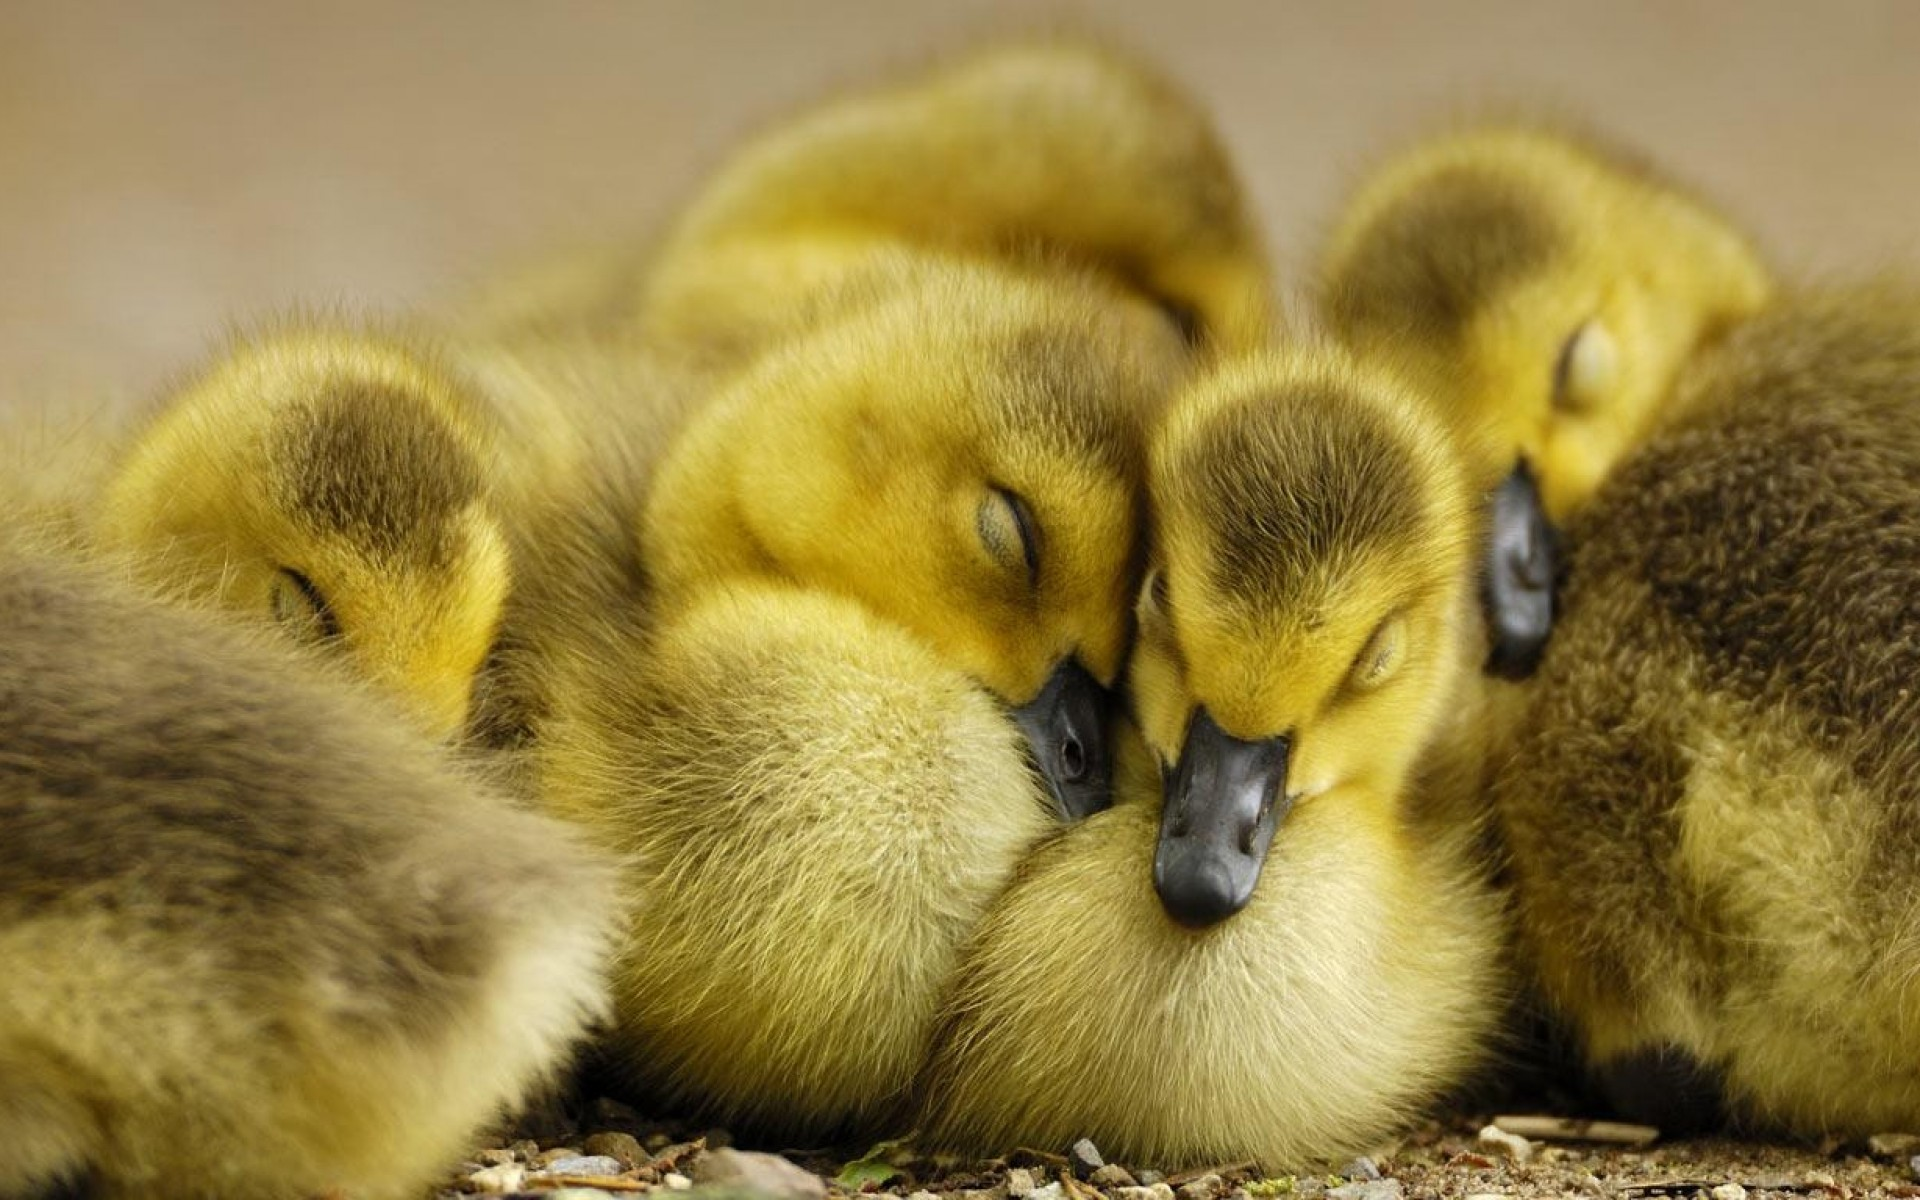 duckling wallpaper hd